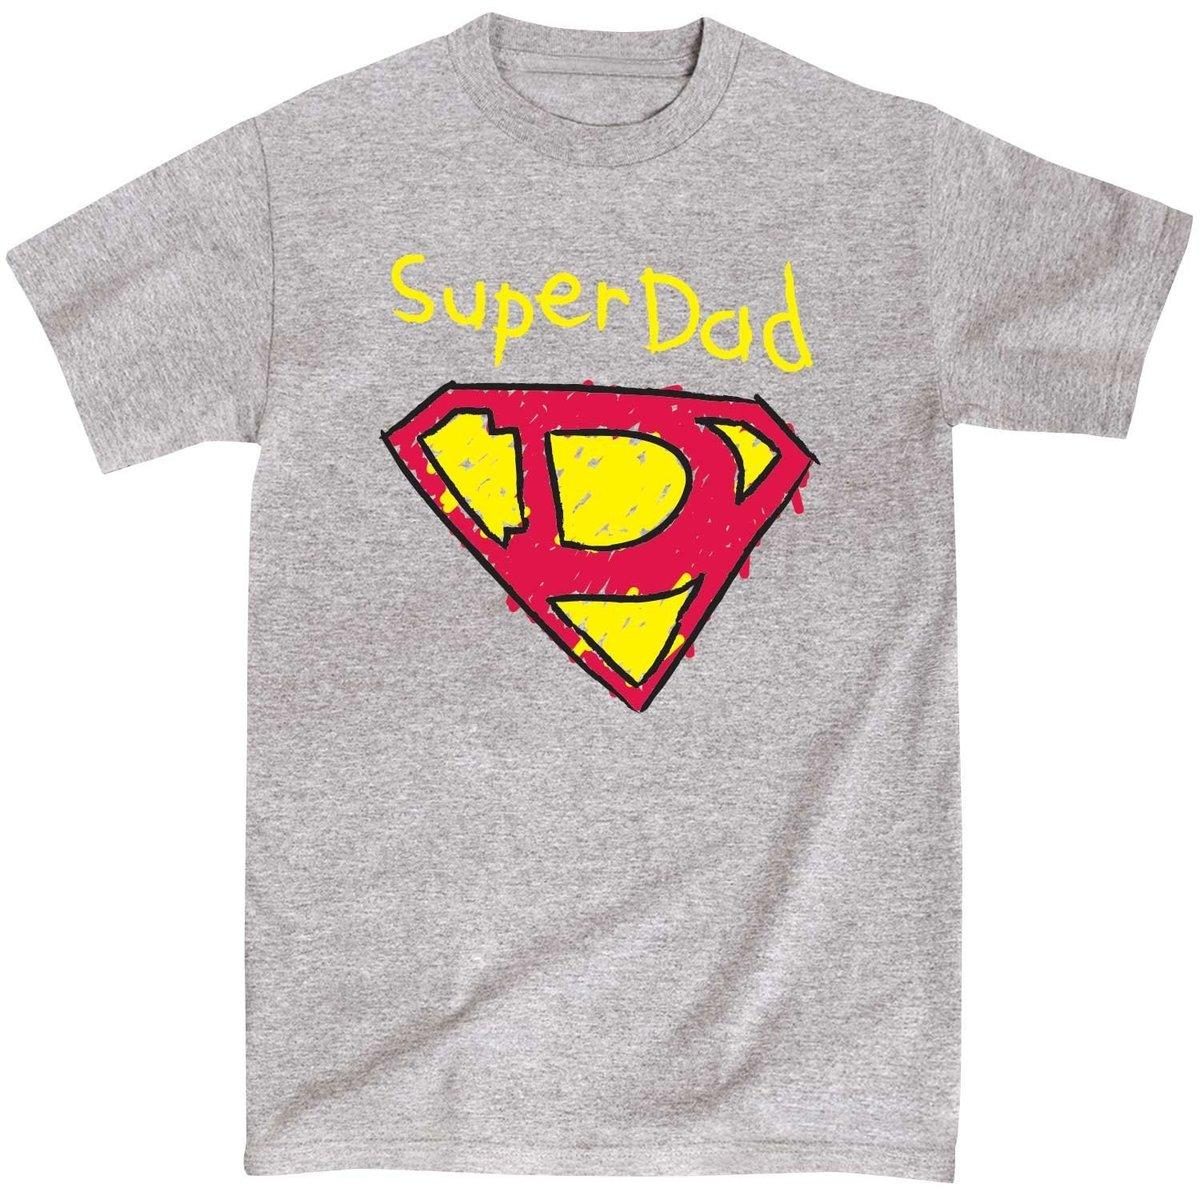 a089d829e Super Dad Father's Day Gift Daddy Comic Sketch Superhero Funny Mens T-Shirt  Design Short Sleeve Tee Shirt Round Neck T Shirt